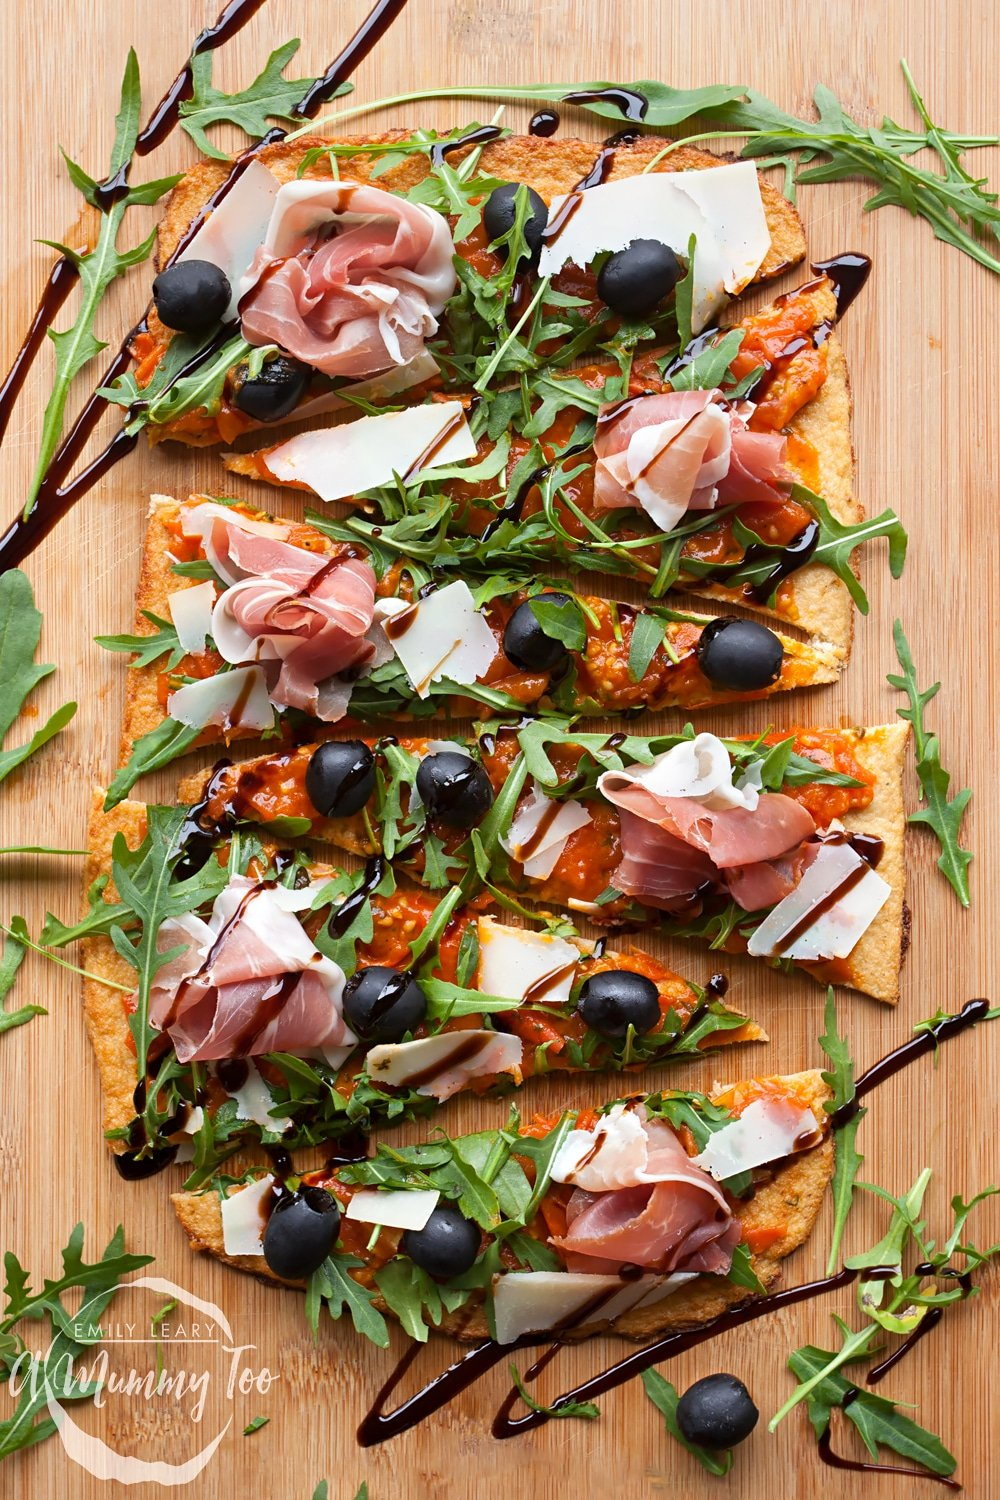 Drizzle balsamic glaze over your Grana Padano and Prosciutto di San Daniele cauliflower crust pizza to finish, serve and enjoy!